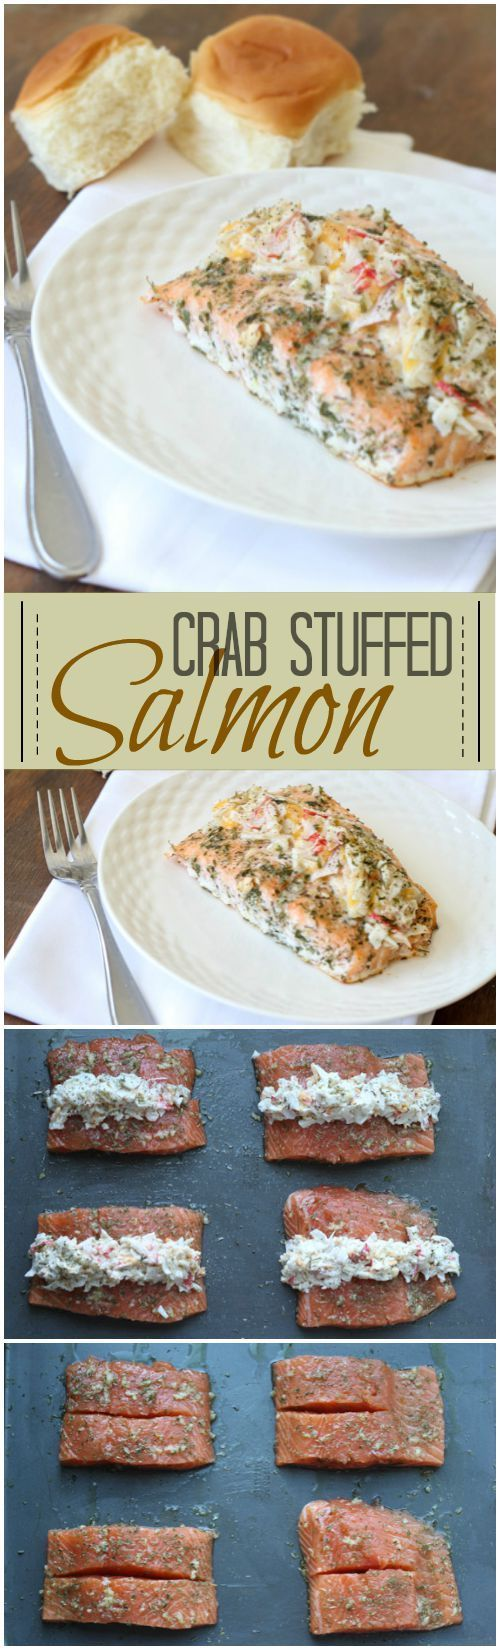 Baked Salmon with a Parmesan Crab and Cheese filling. http://ValentinasCorner.com